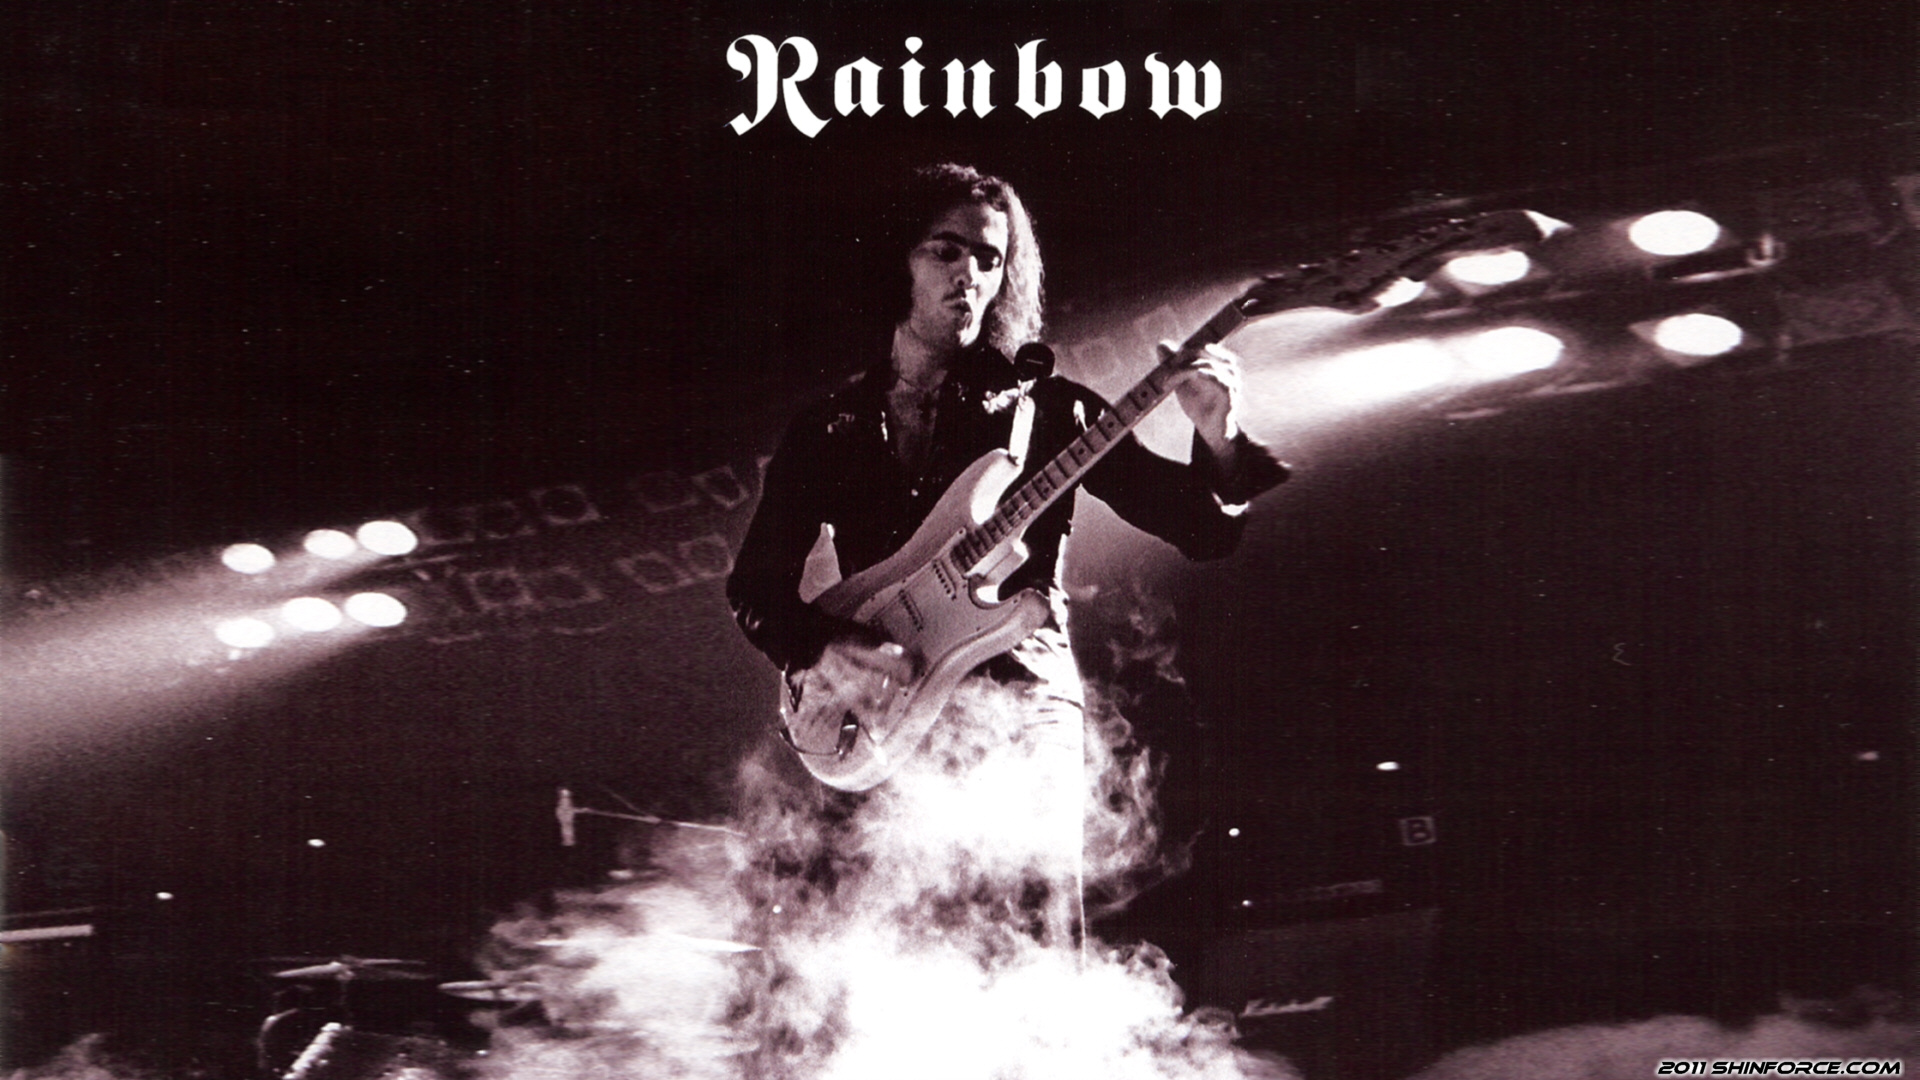 Best Wallpaper Music Rainbow - Ritchie_Blackmore-a-1920x1080  You Should Have_51911.jpg